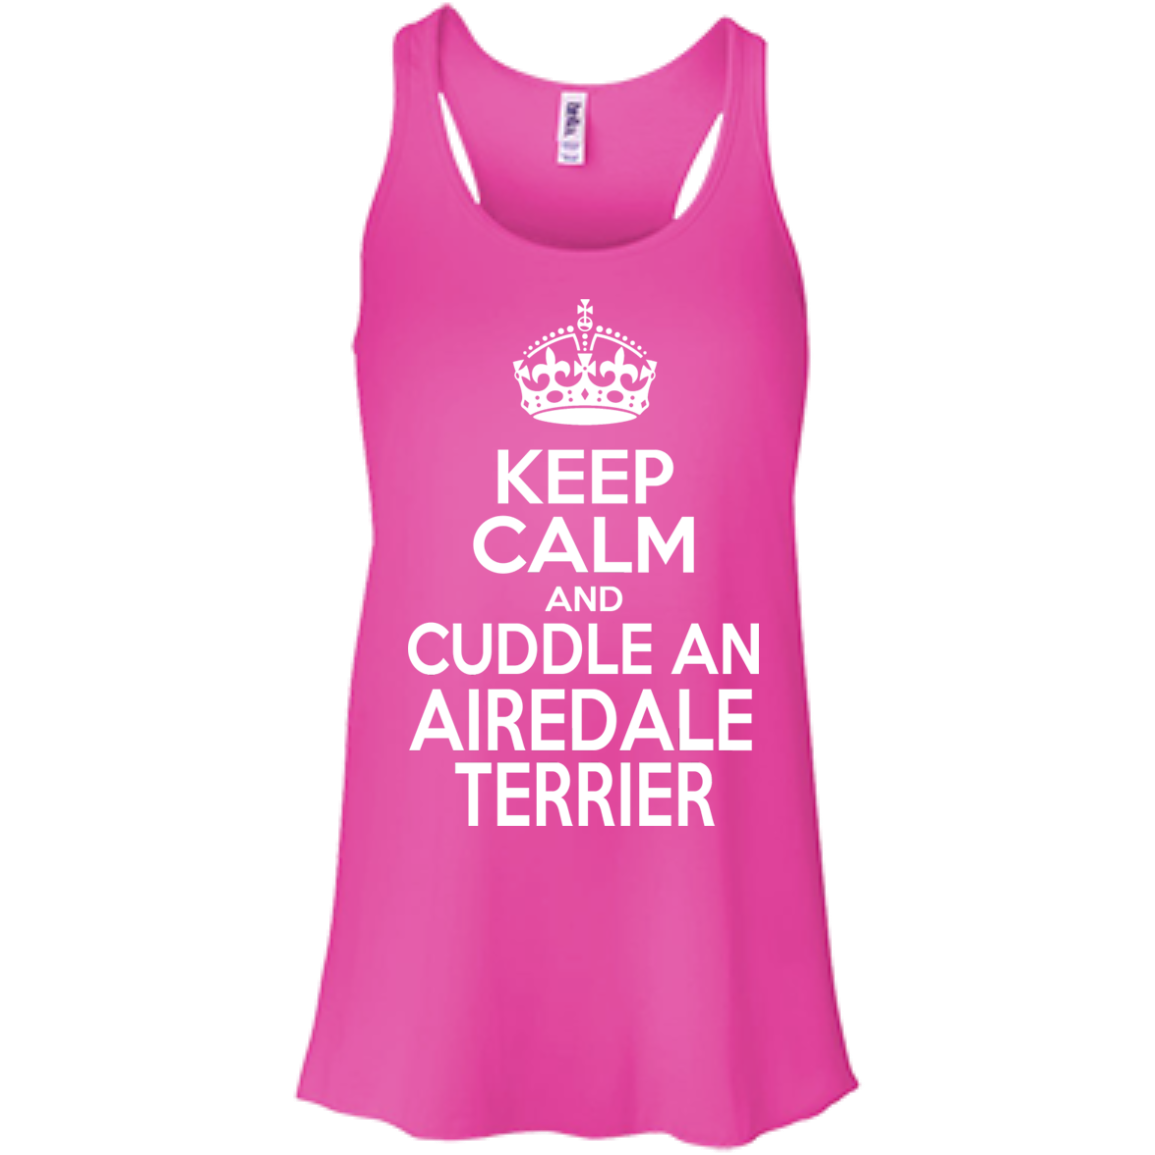 Keep Calm And Cuddle An Airedale Terrier Flowy Racerback Tanks